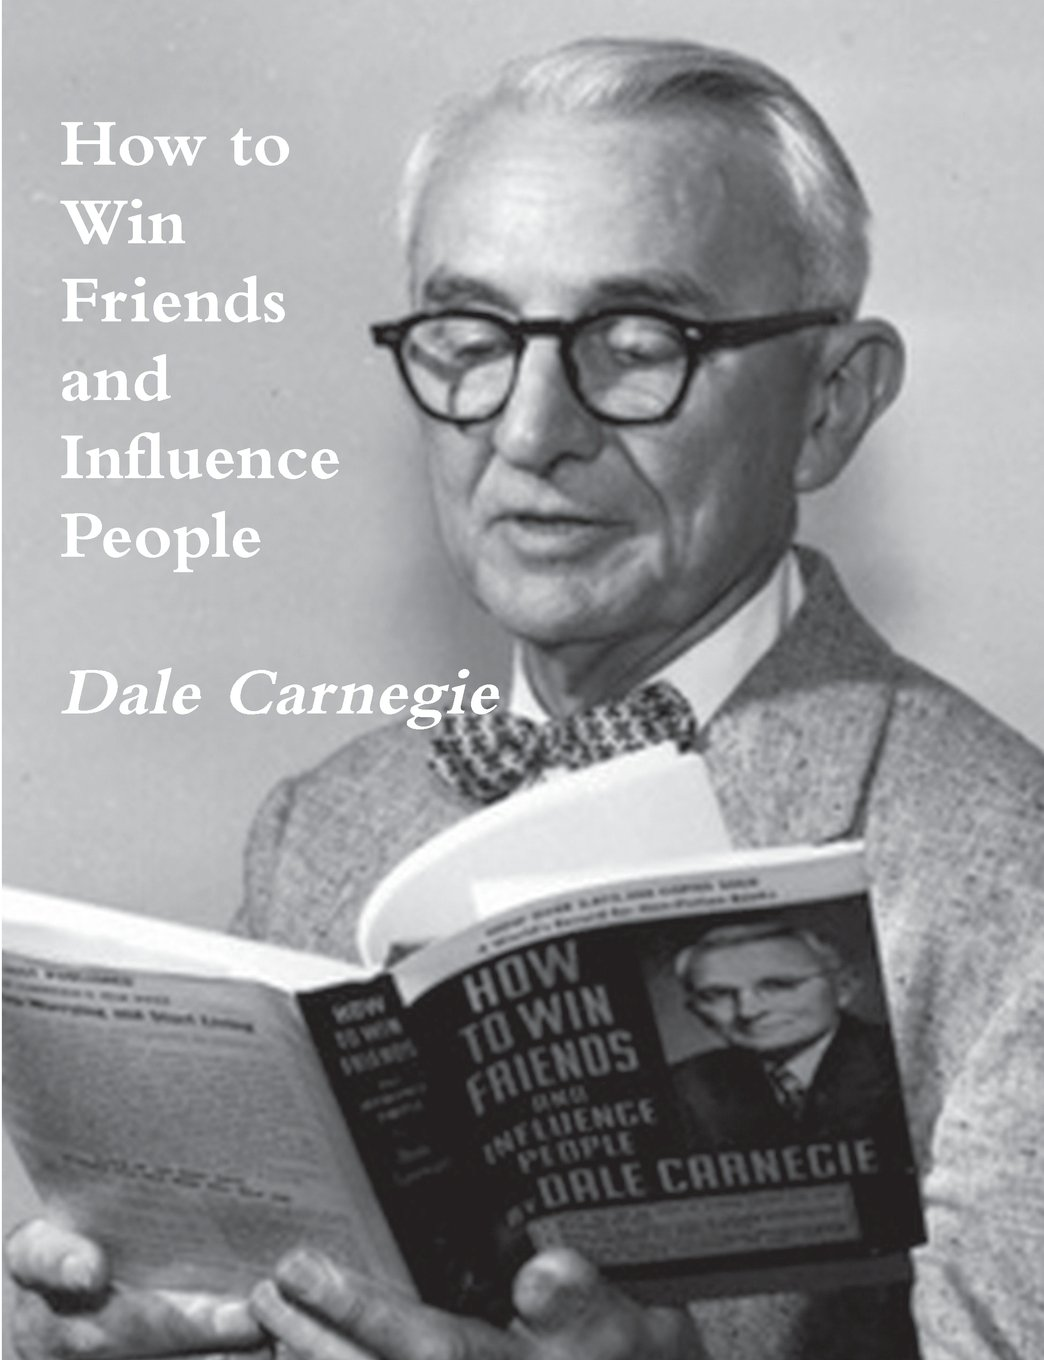 How To Win Friends and Influence People: Amazon.co.uk: Dale Carnegie:  9788087888223: Books